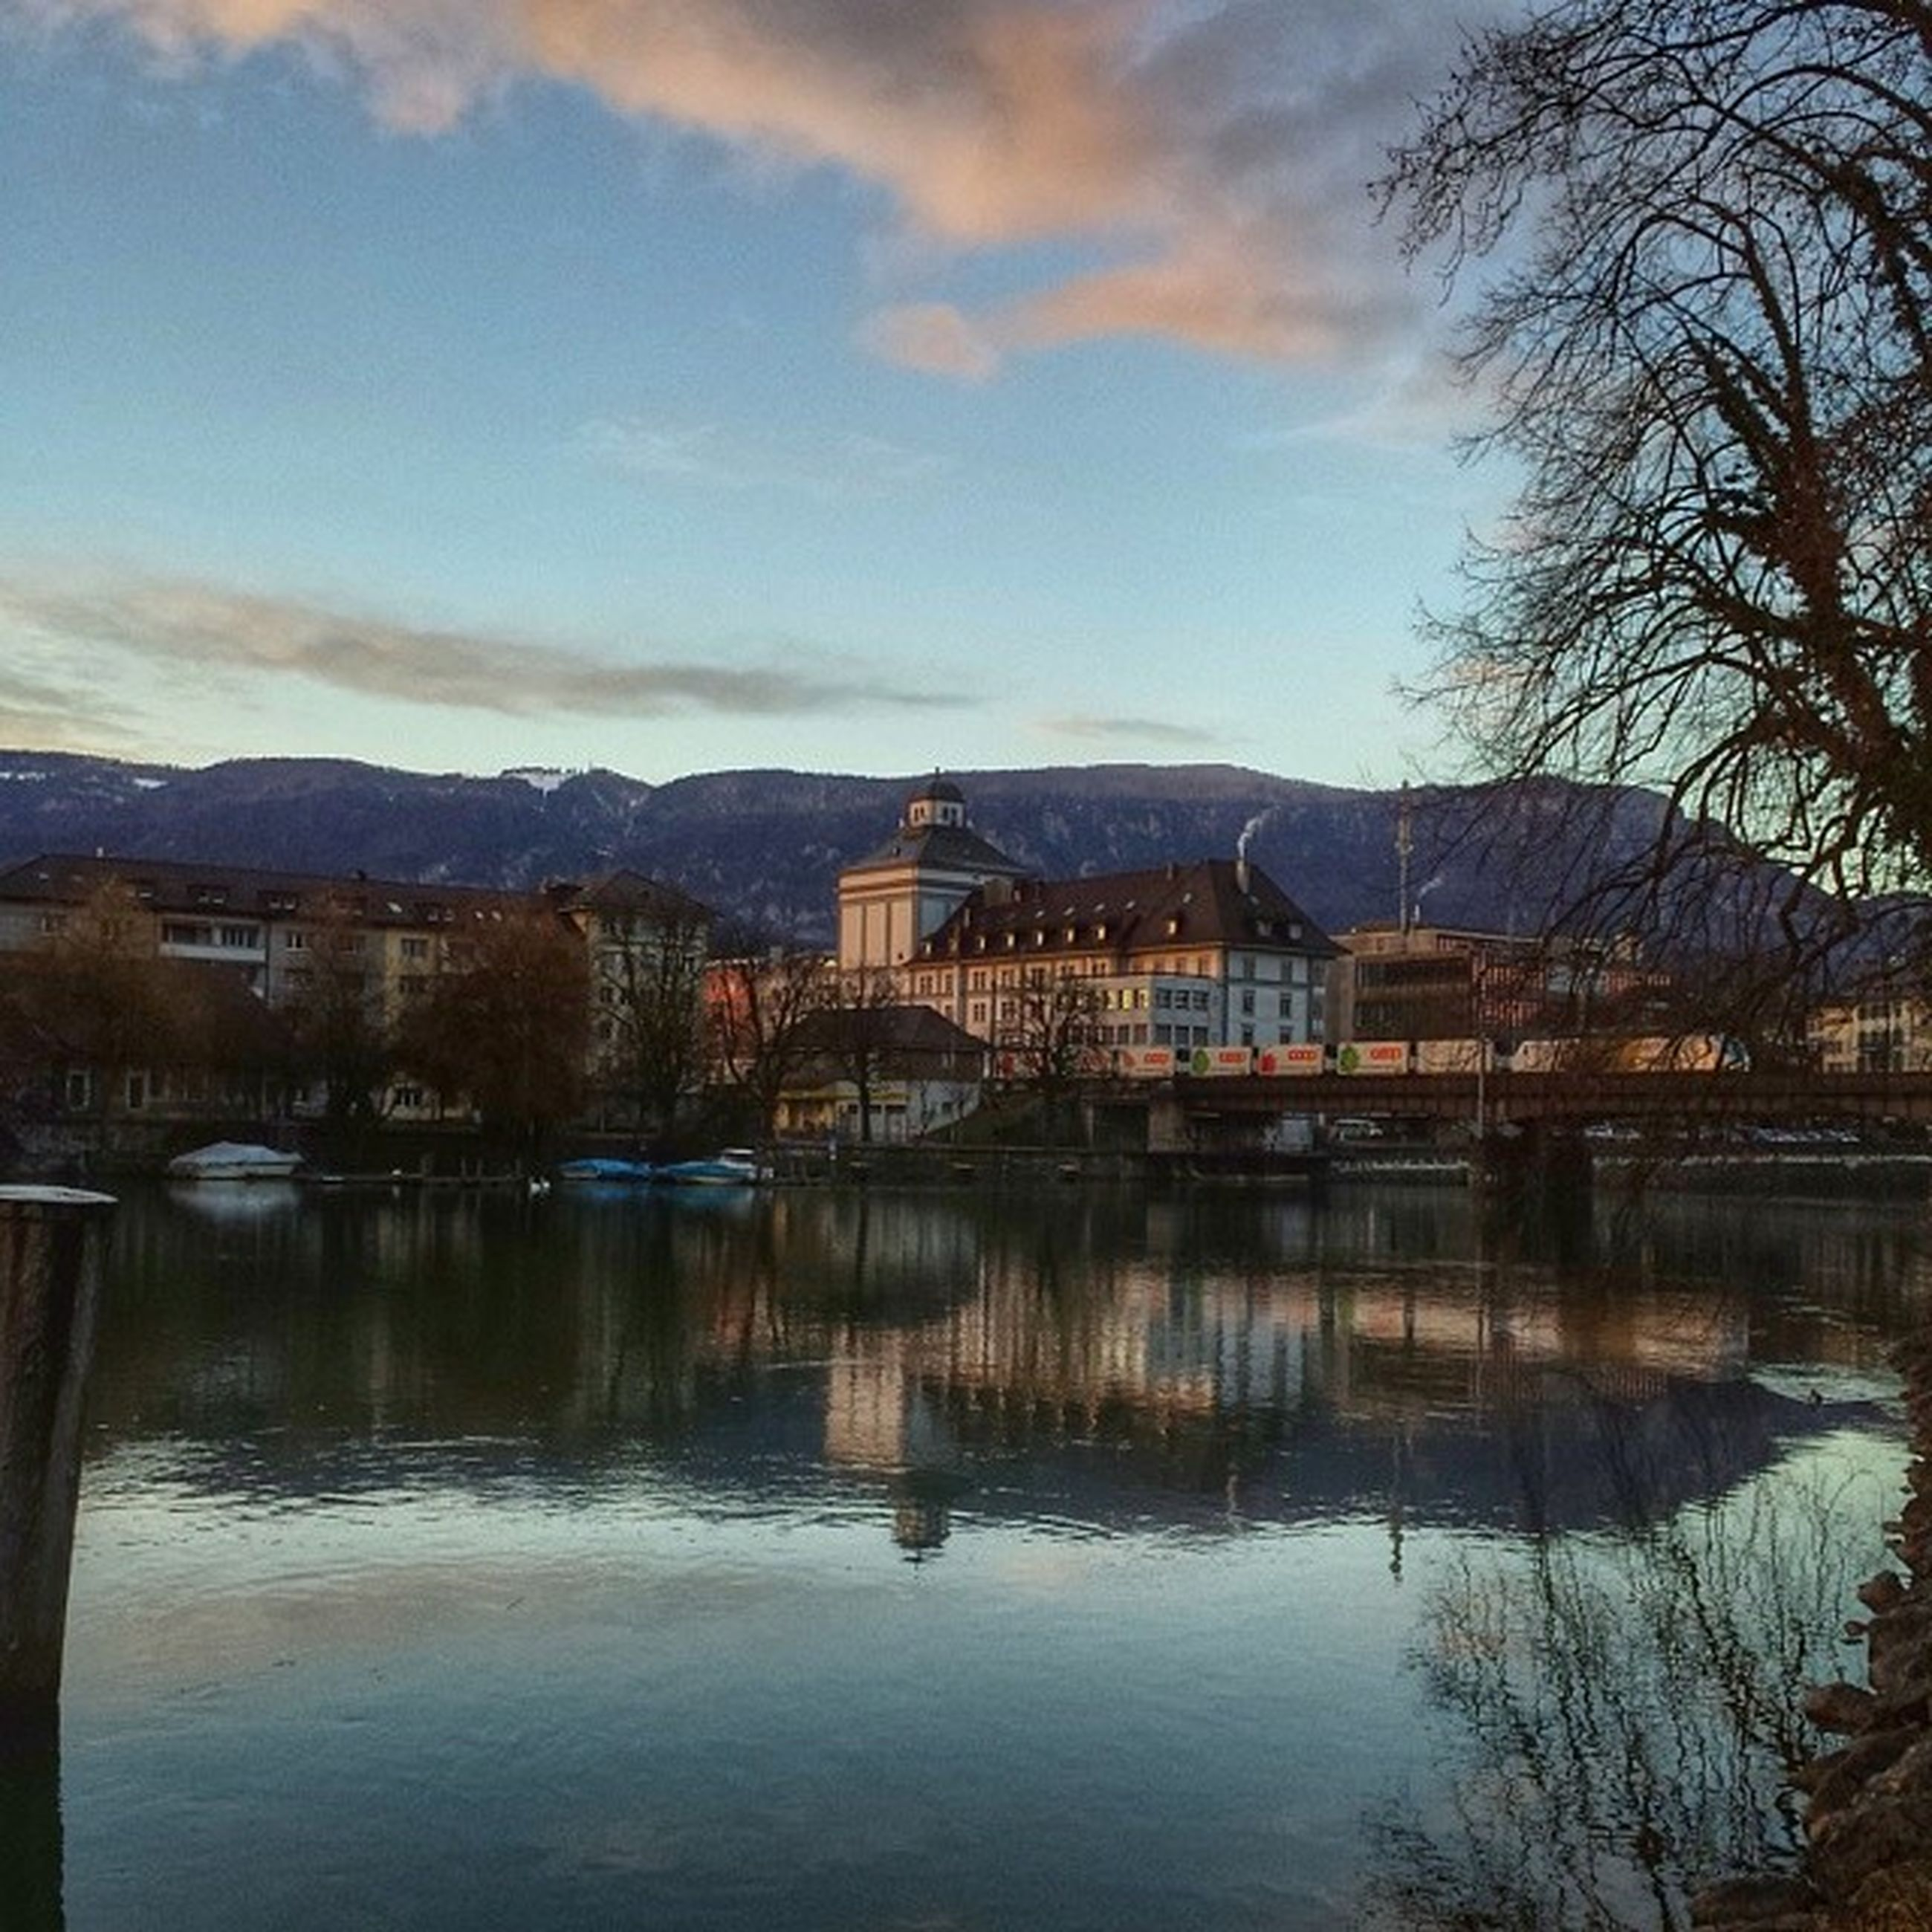 architecture, built structure, building exterior, water, reflection, mountain, sky, lake, house, waterfront, river, tree, mountain range, cloud - sky, tranquility, residential structure, town, tranquil scene, cloud, nature